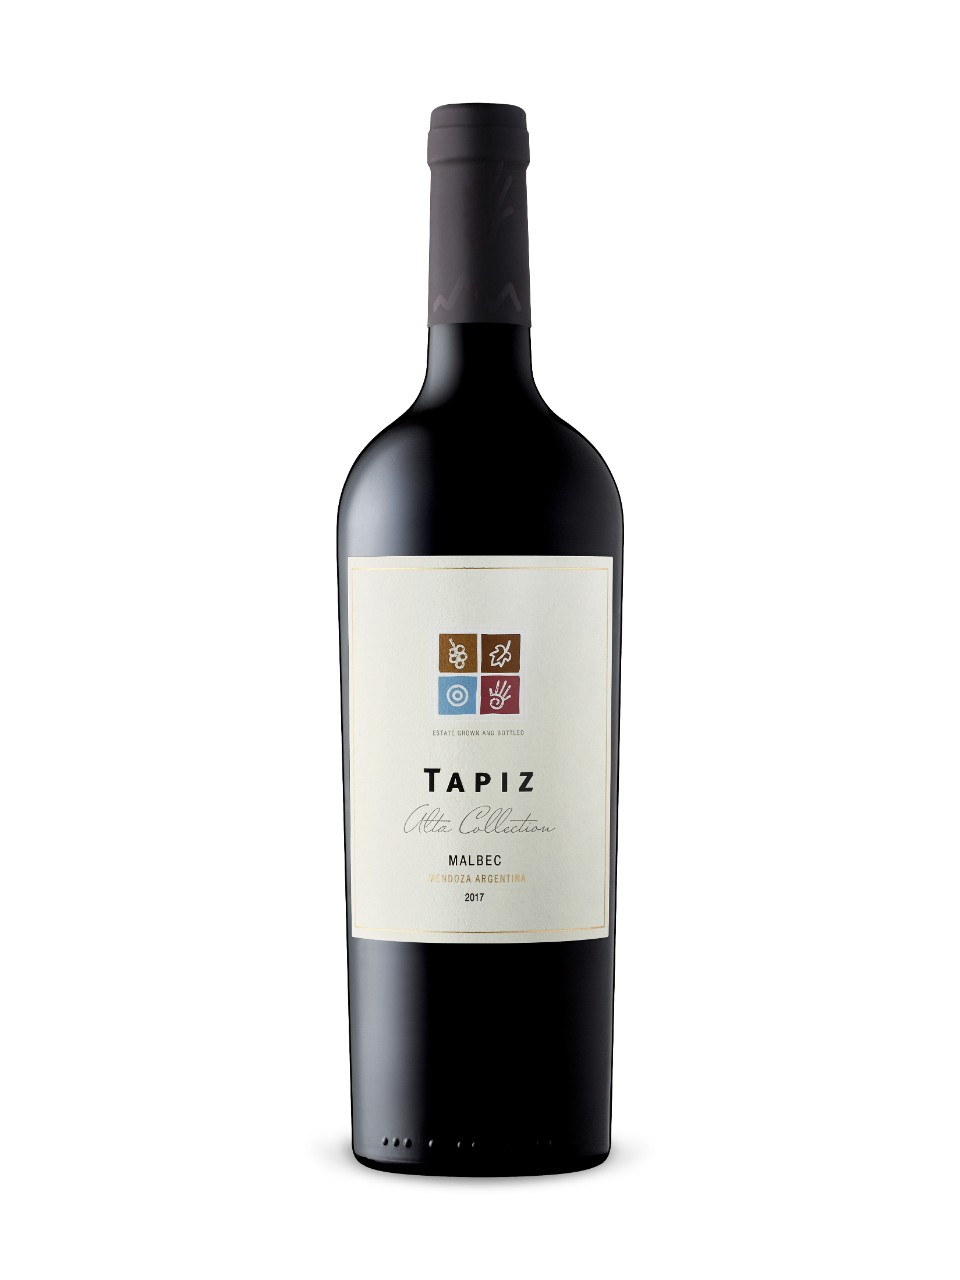 Malbec Alta Collection Tapiz 2015